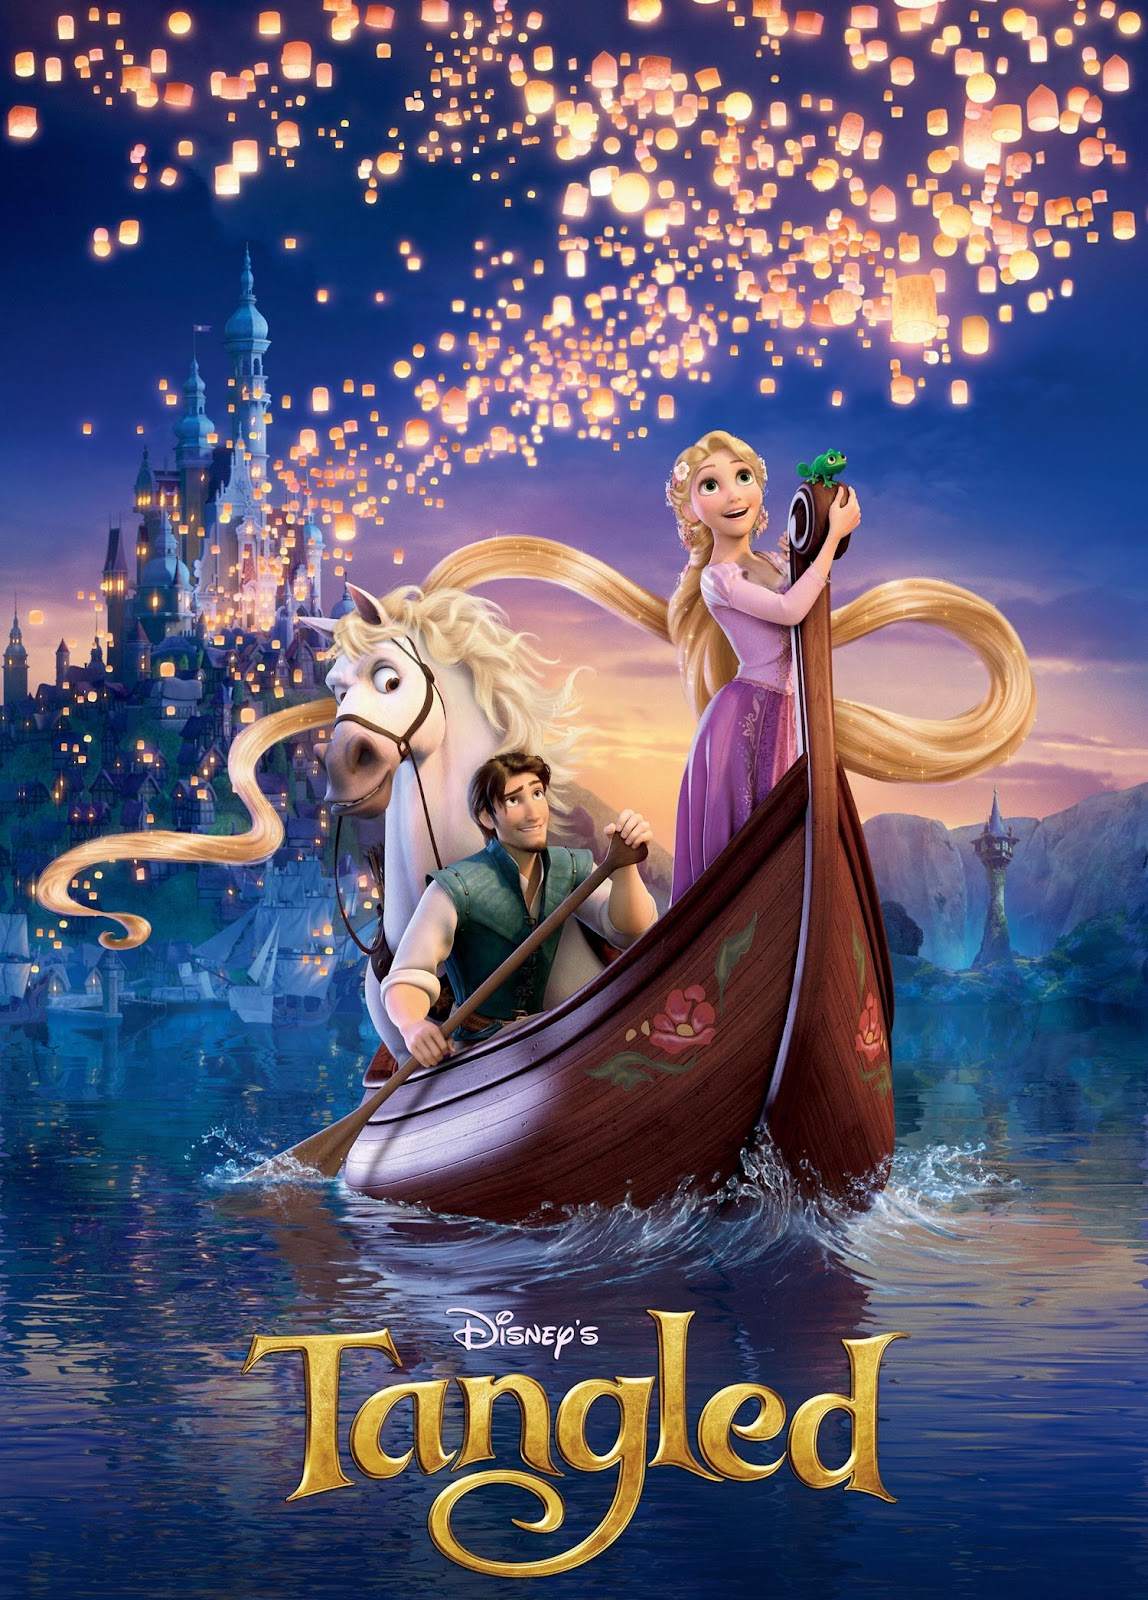 Tangled #100DaysOfDisney